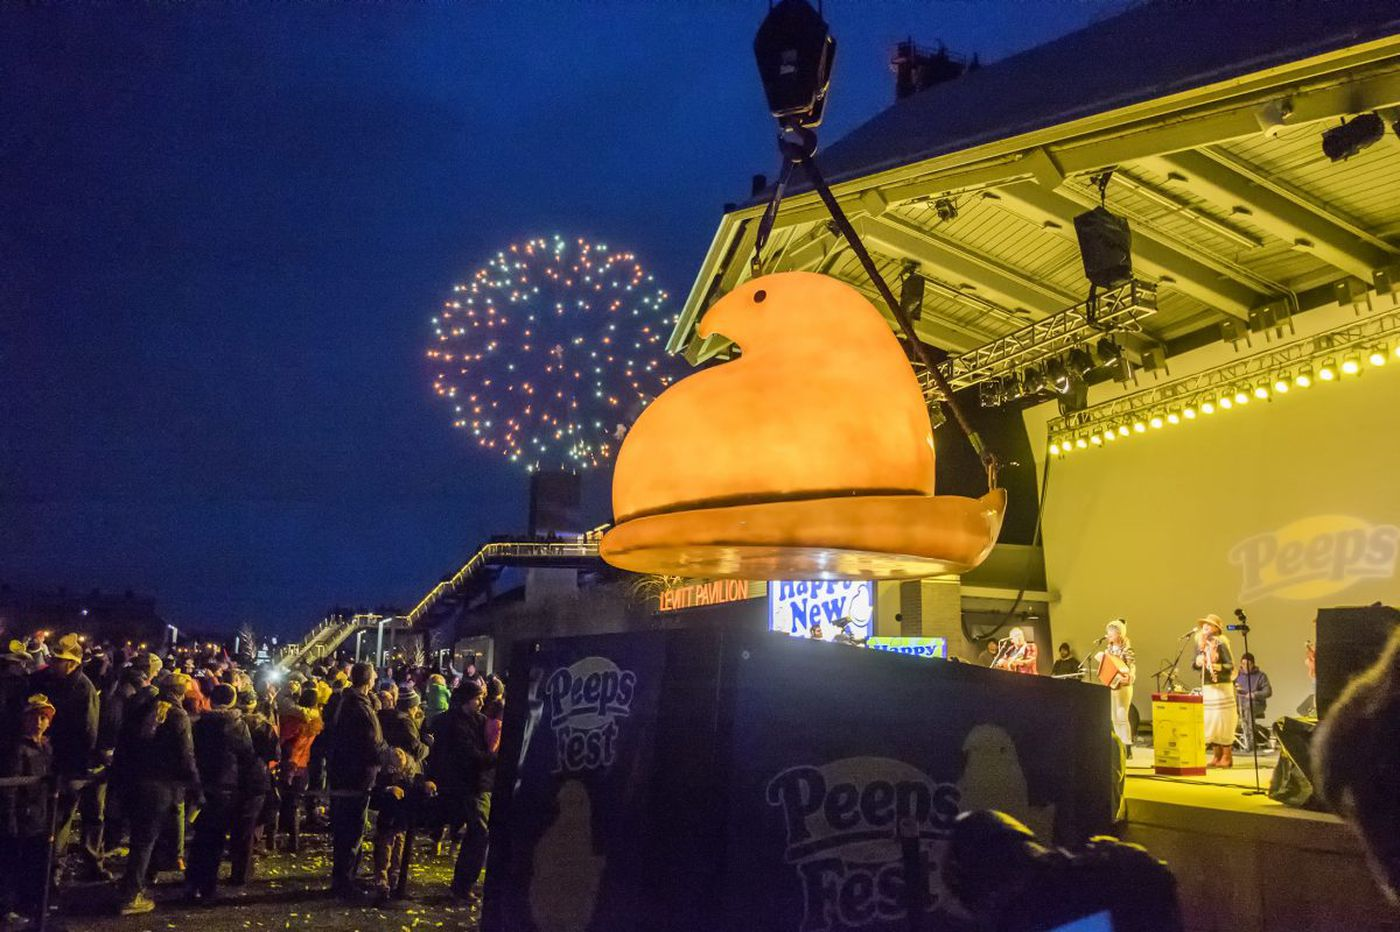 All of the weird things Pennsylvania drops on New Year's Eve